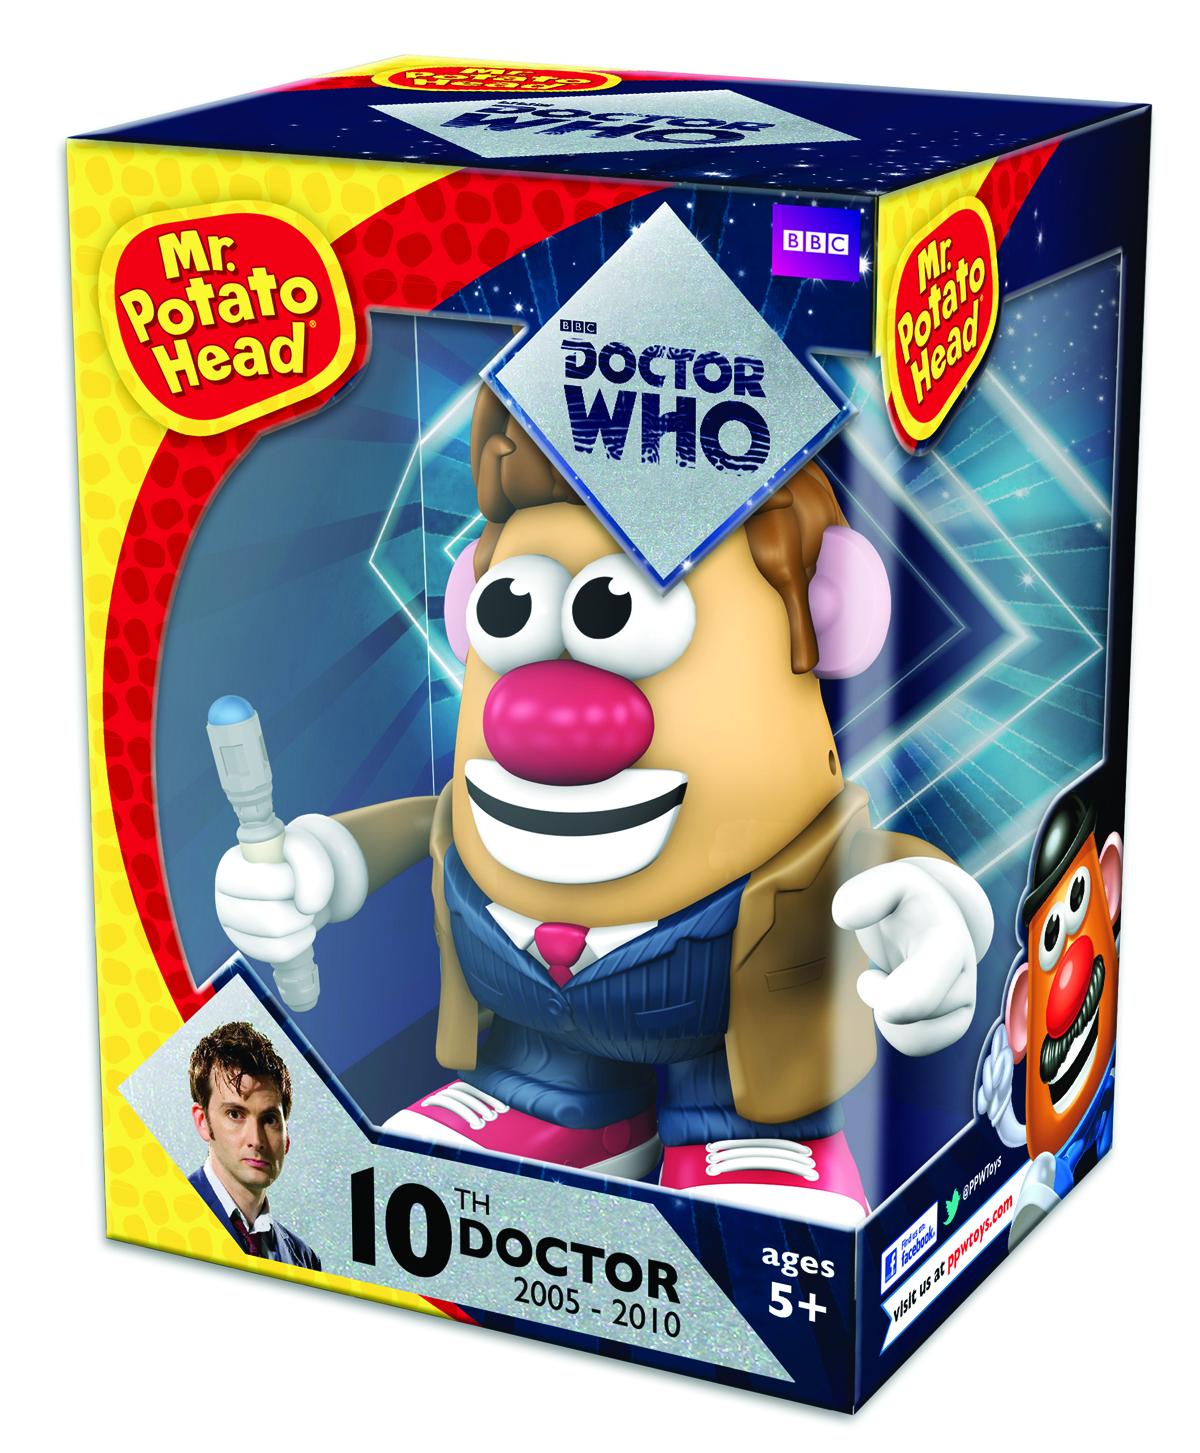 MR POTATO HEAD DOCTOR WHO 10TH DOCTOR